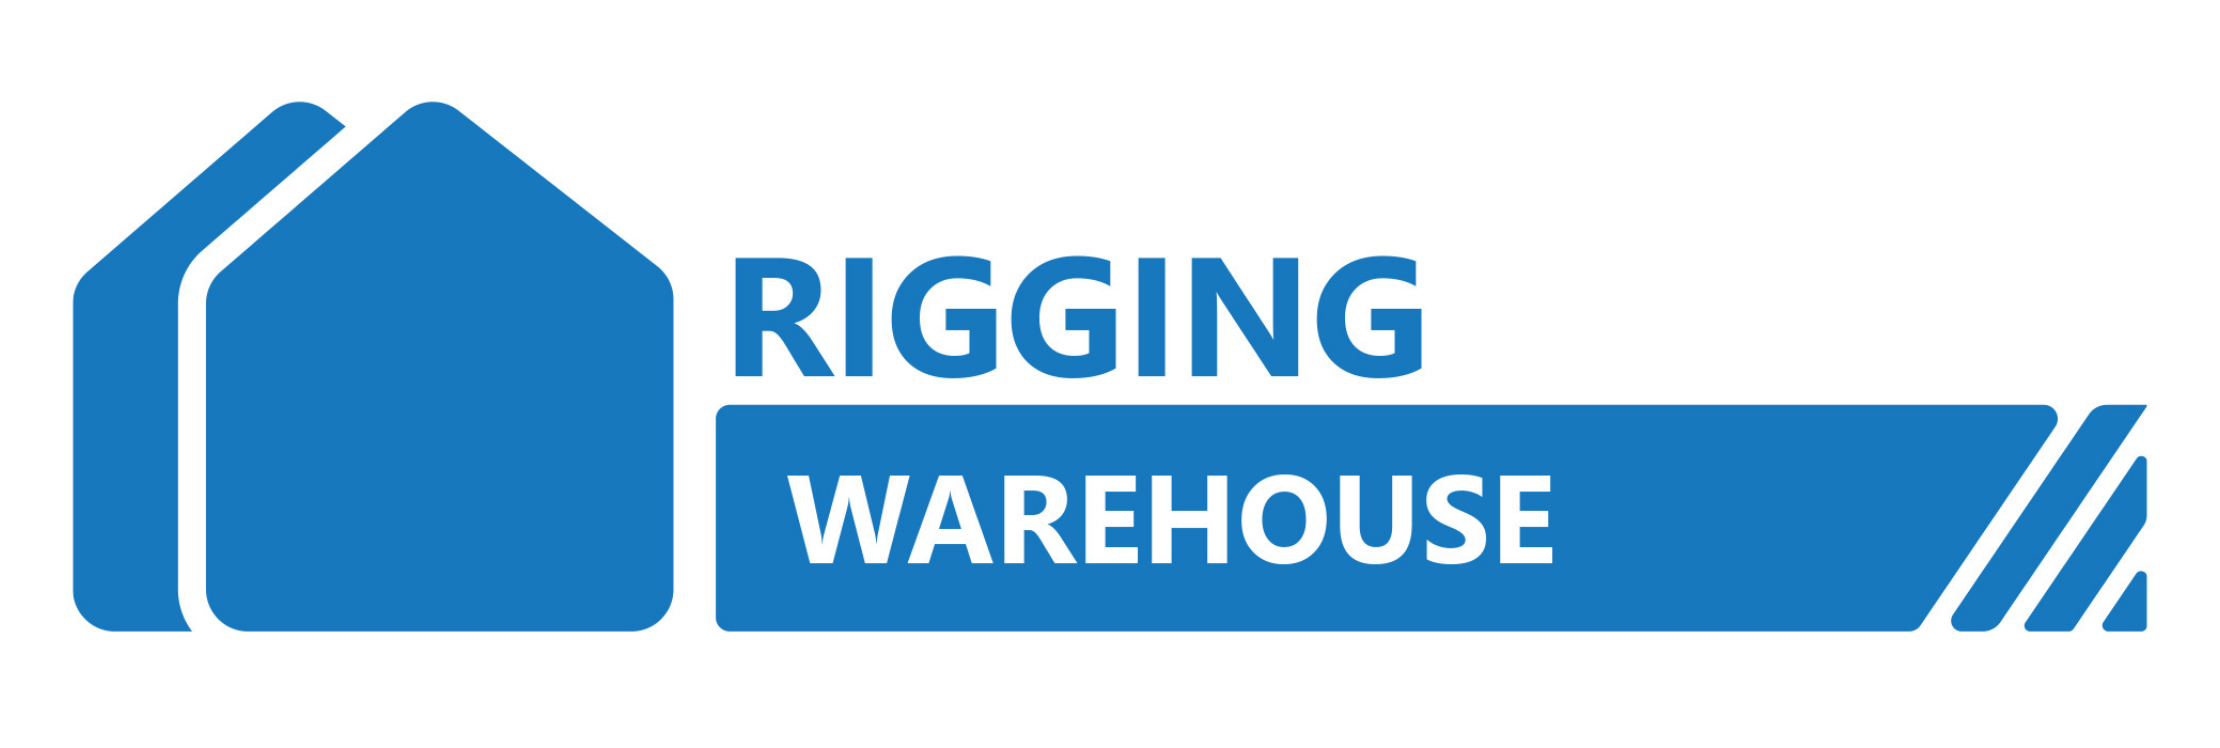 Rigging Warehouse reviews | Building Supplies at 1 Tomsons Rd #110 - Saugerties NY